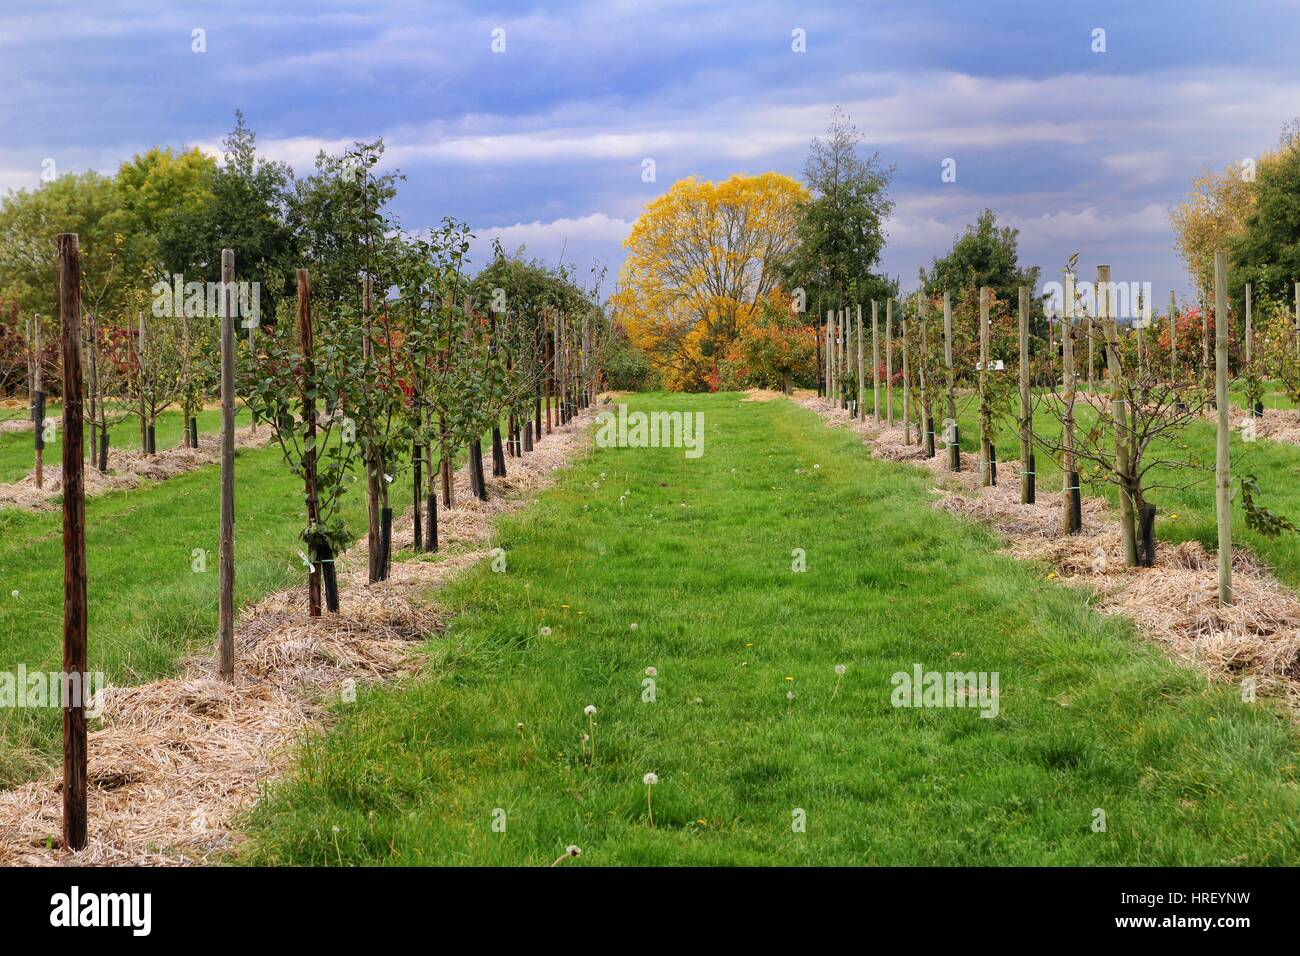 Rows of cultivated fruit trees in Autumn or Fall - Stock Image